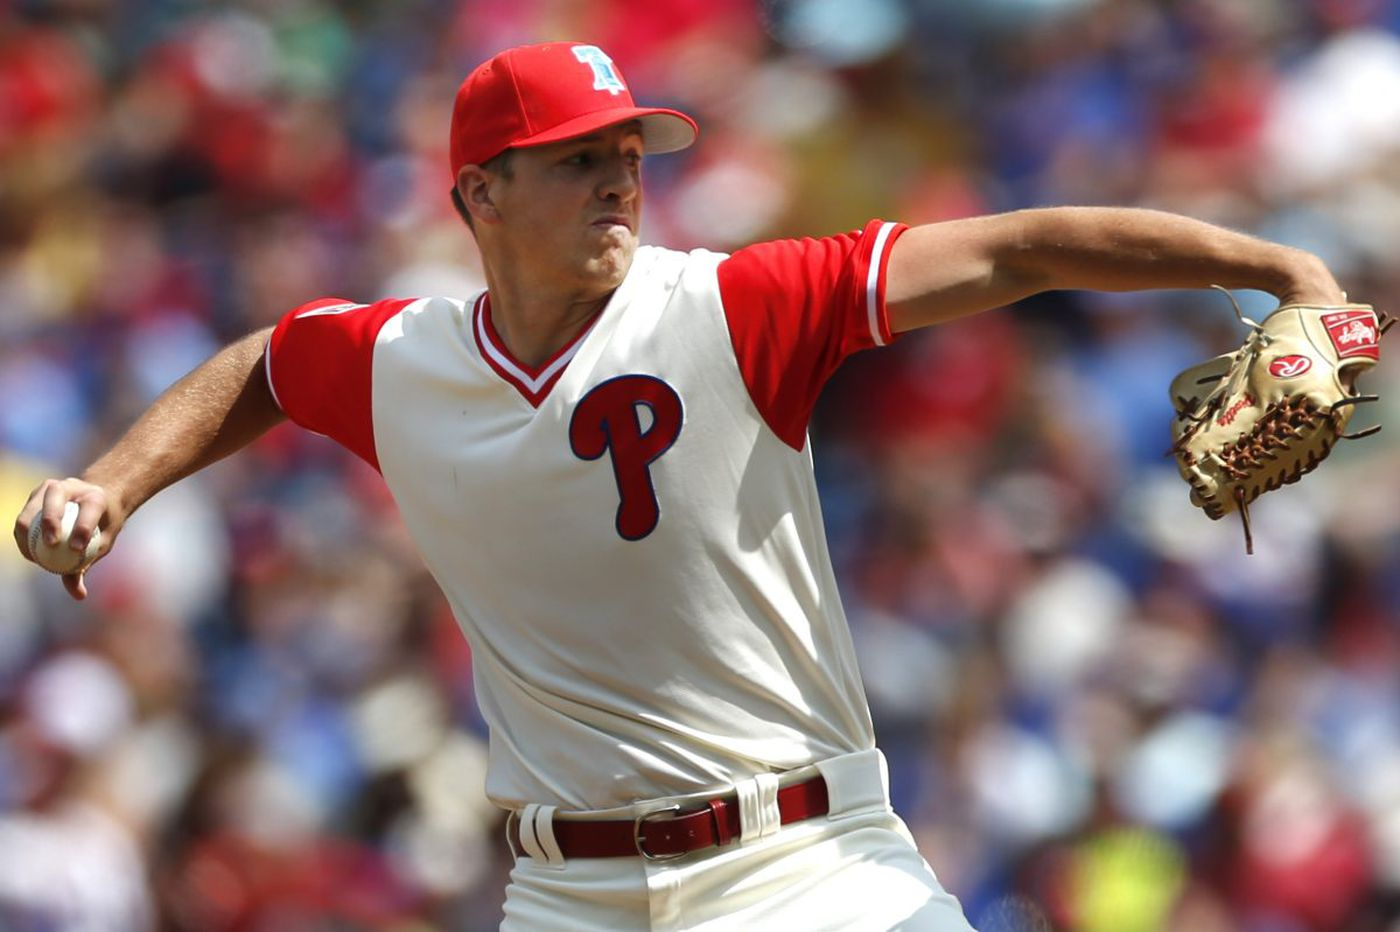 Phillies rookie Nick Pivetta survives another rocky first inning